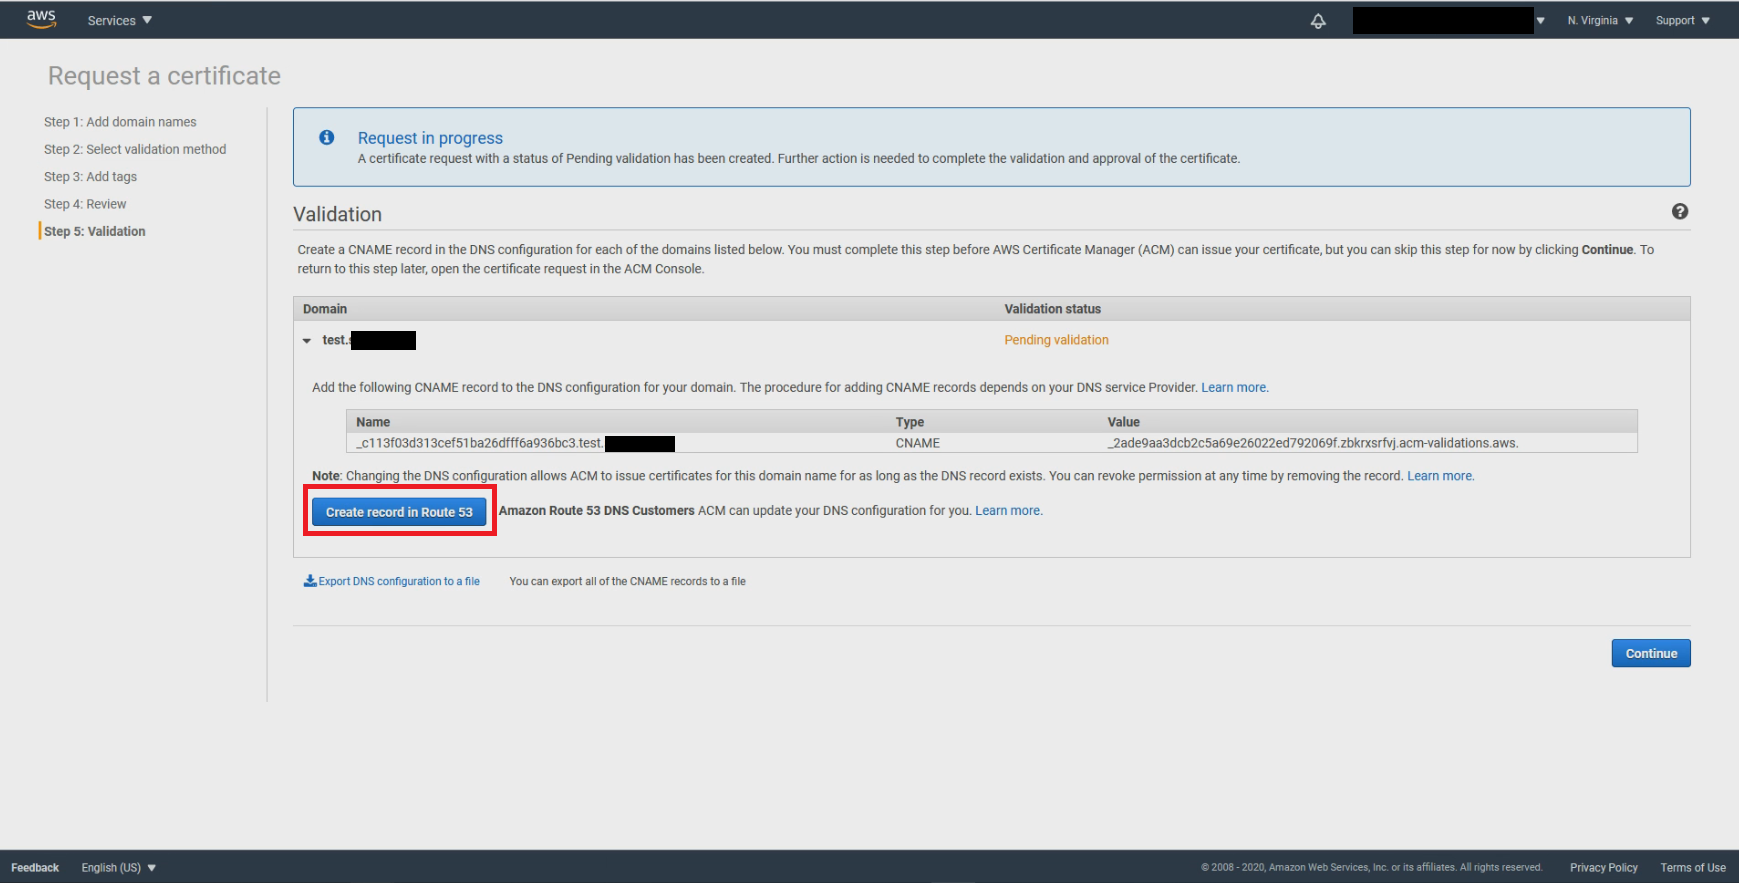 Create record in Route 53 for validation